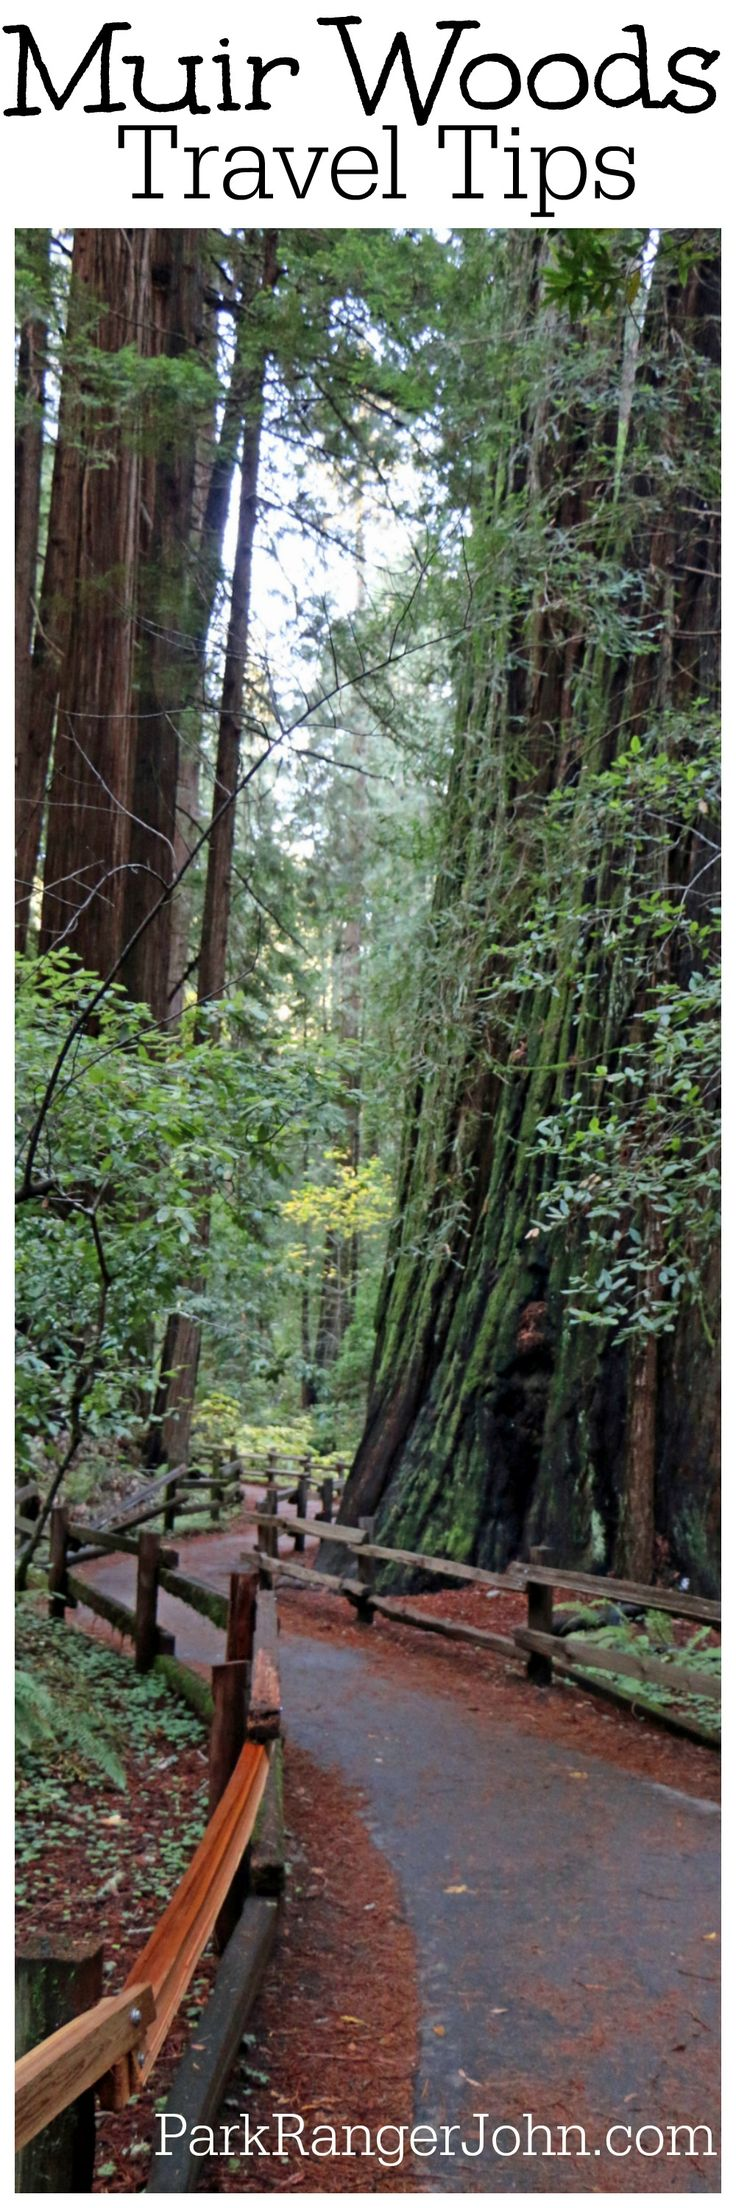 how to go to muir woods from san francisco